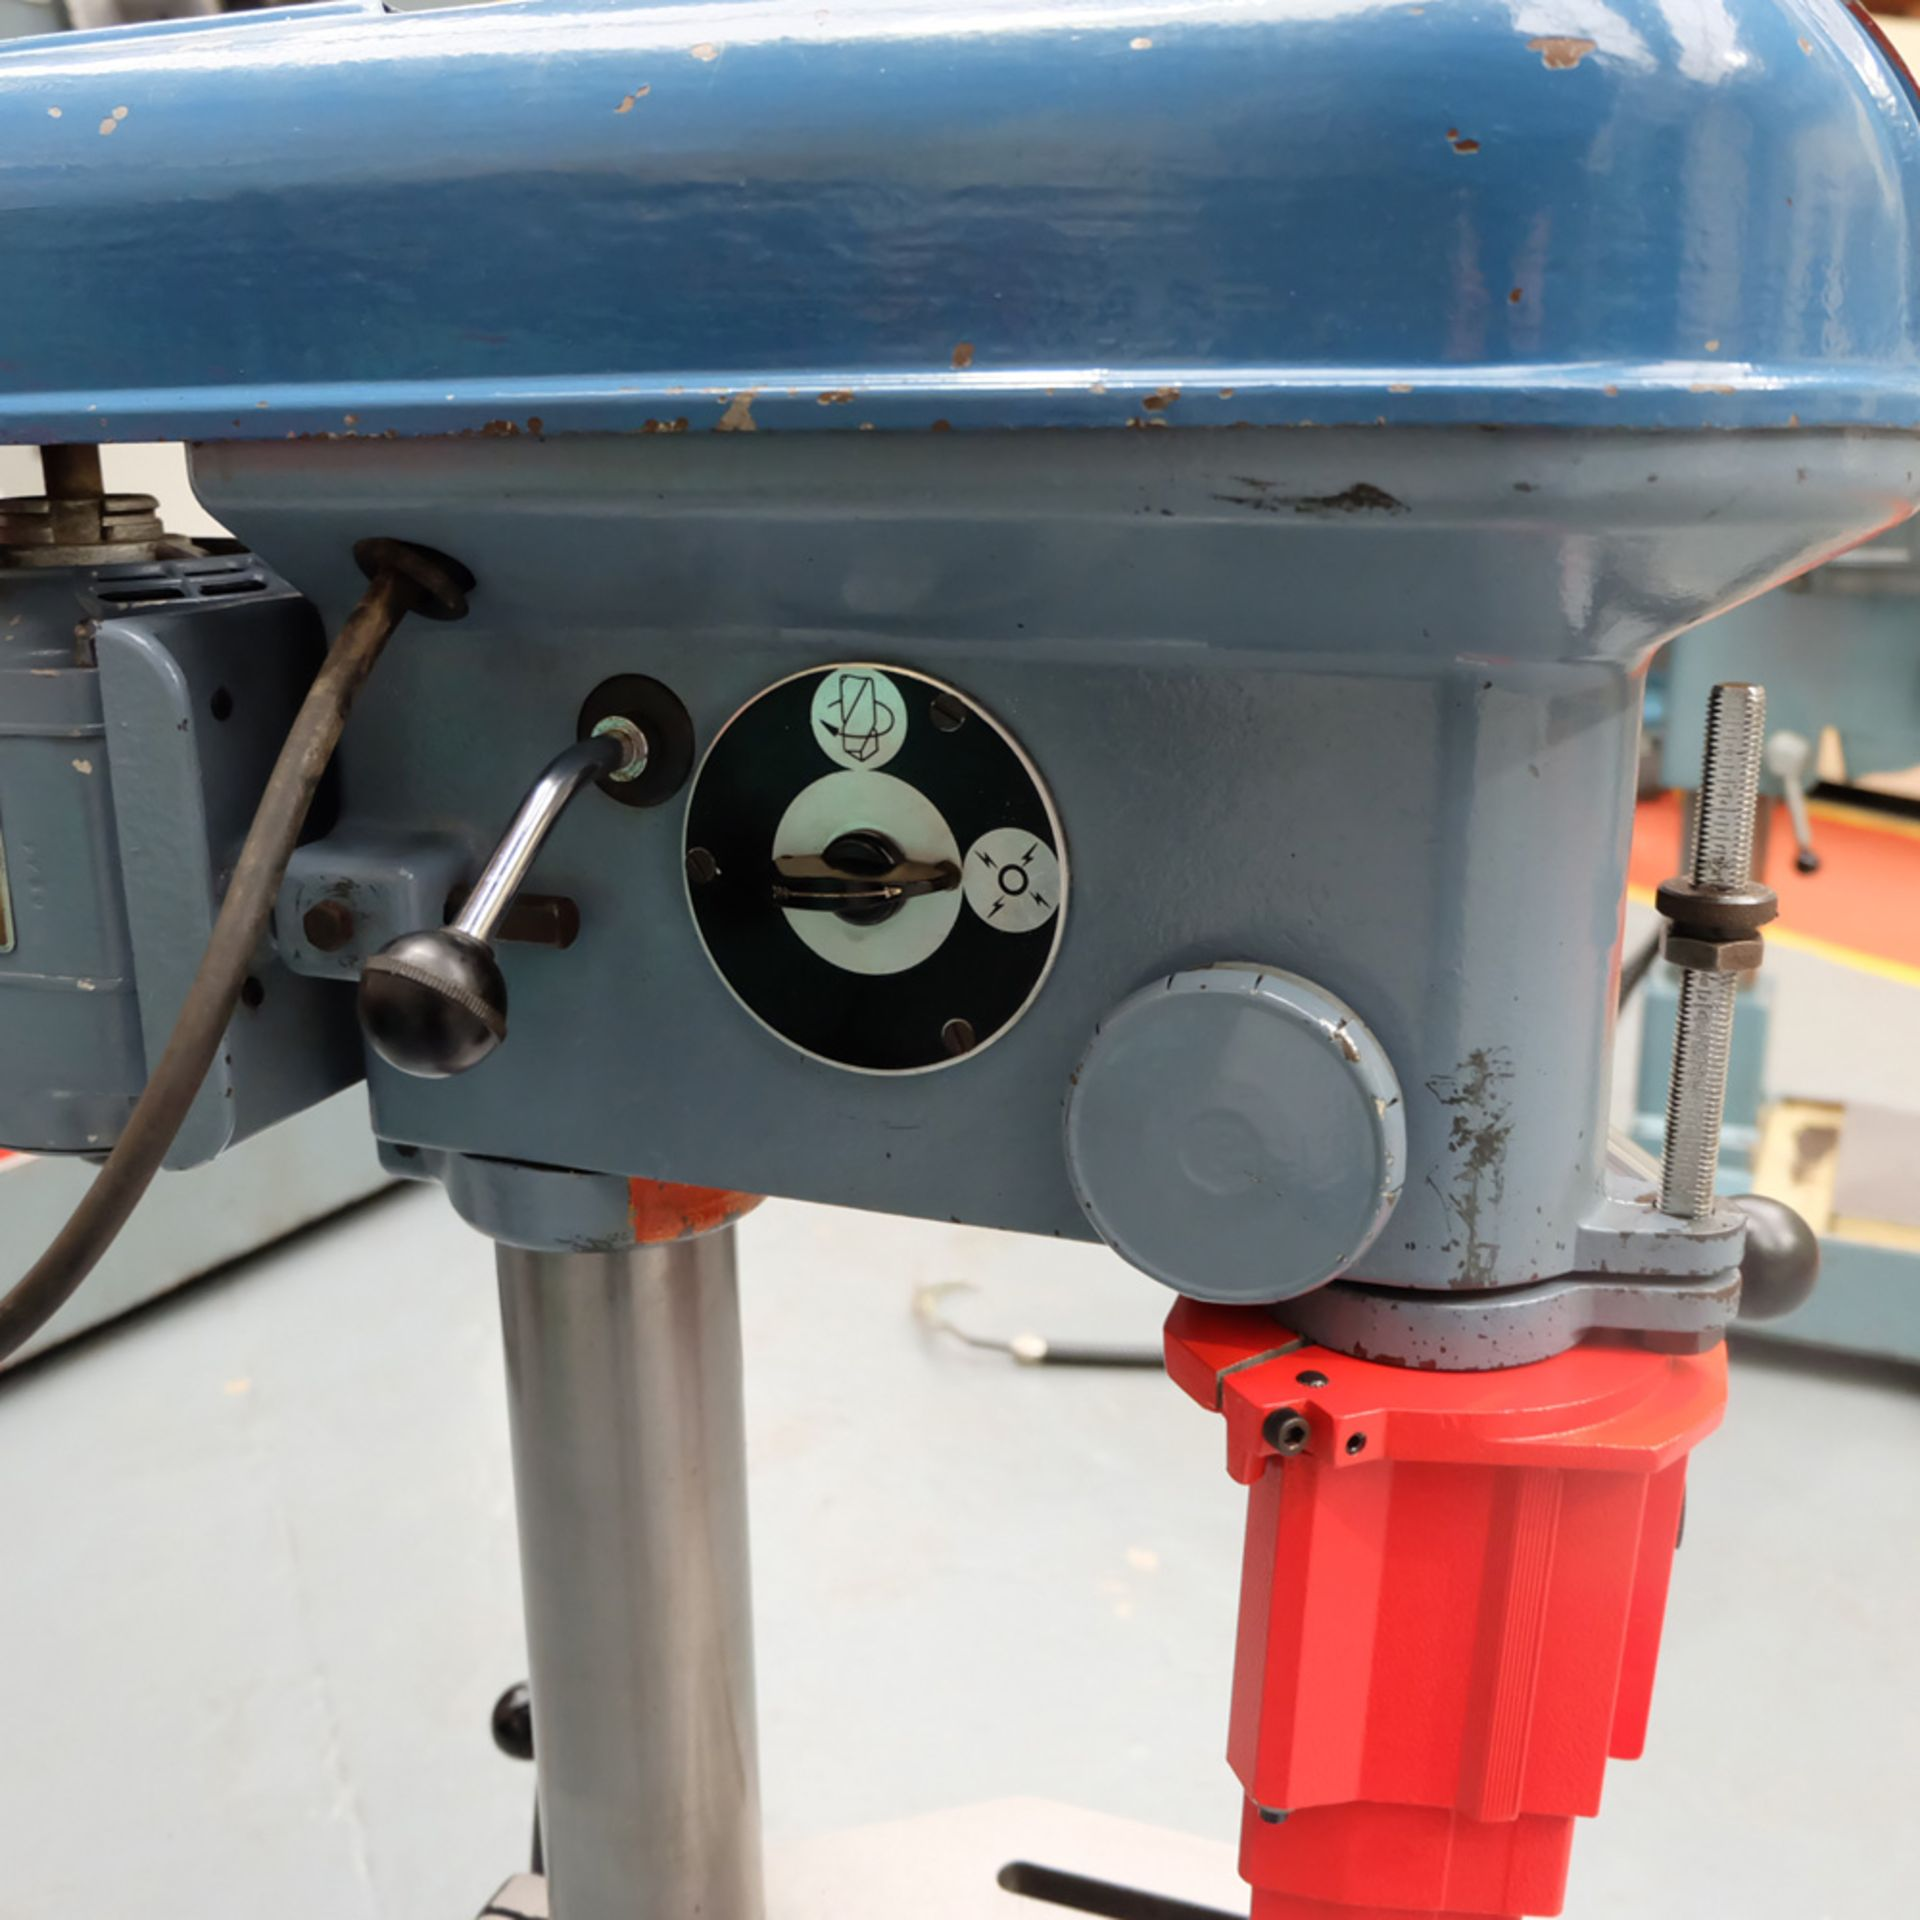 """Meddings Drilltru DTF Bench Drill. Capacity 1/2"""". Table Size 9"""" x 11"""". - Image 3 of 7"""